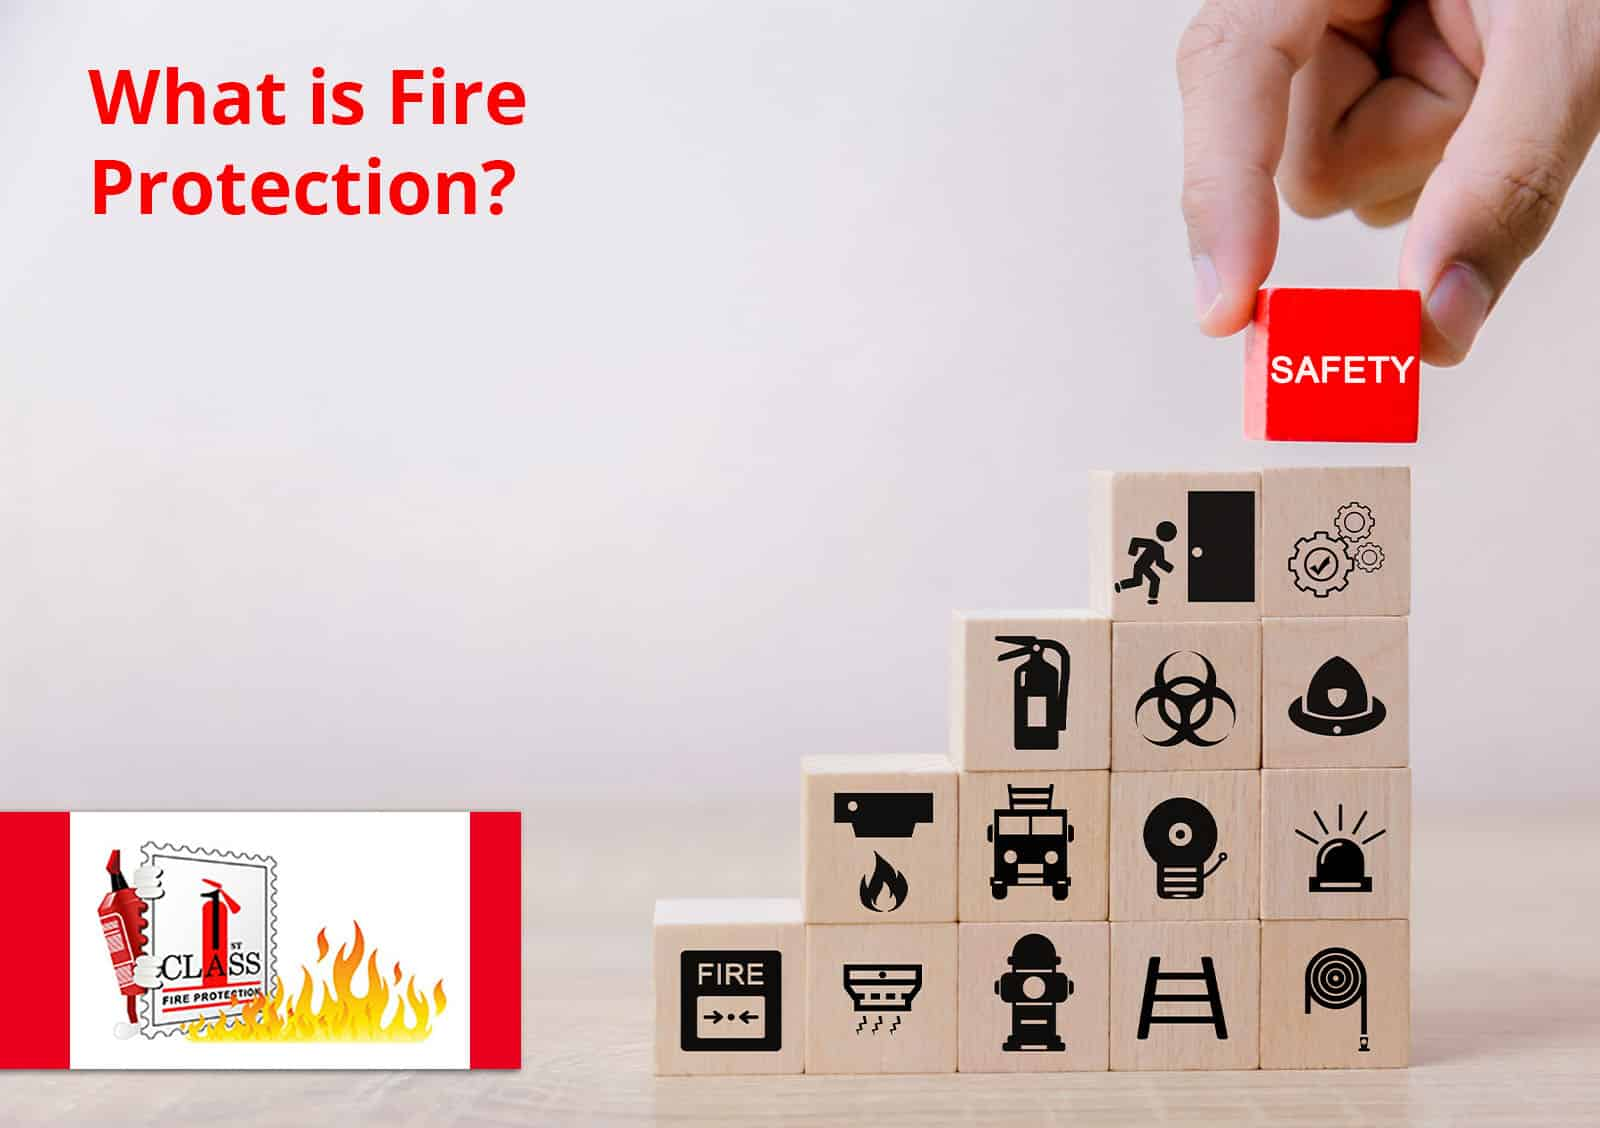 What is fire protection